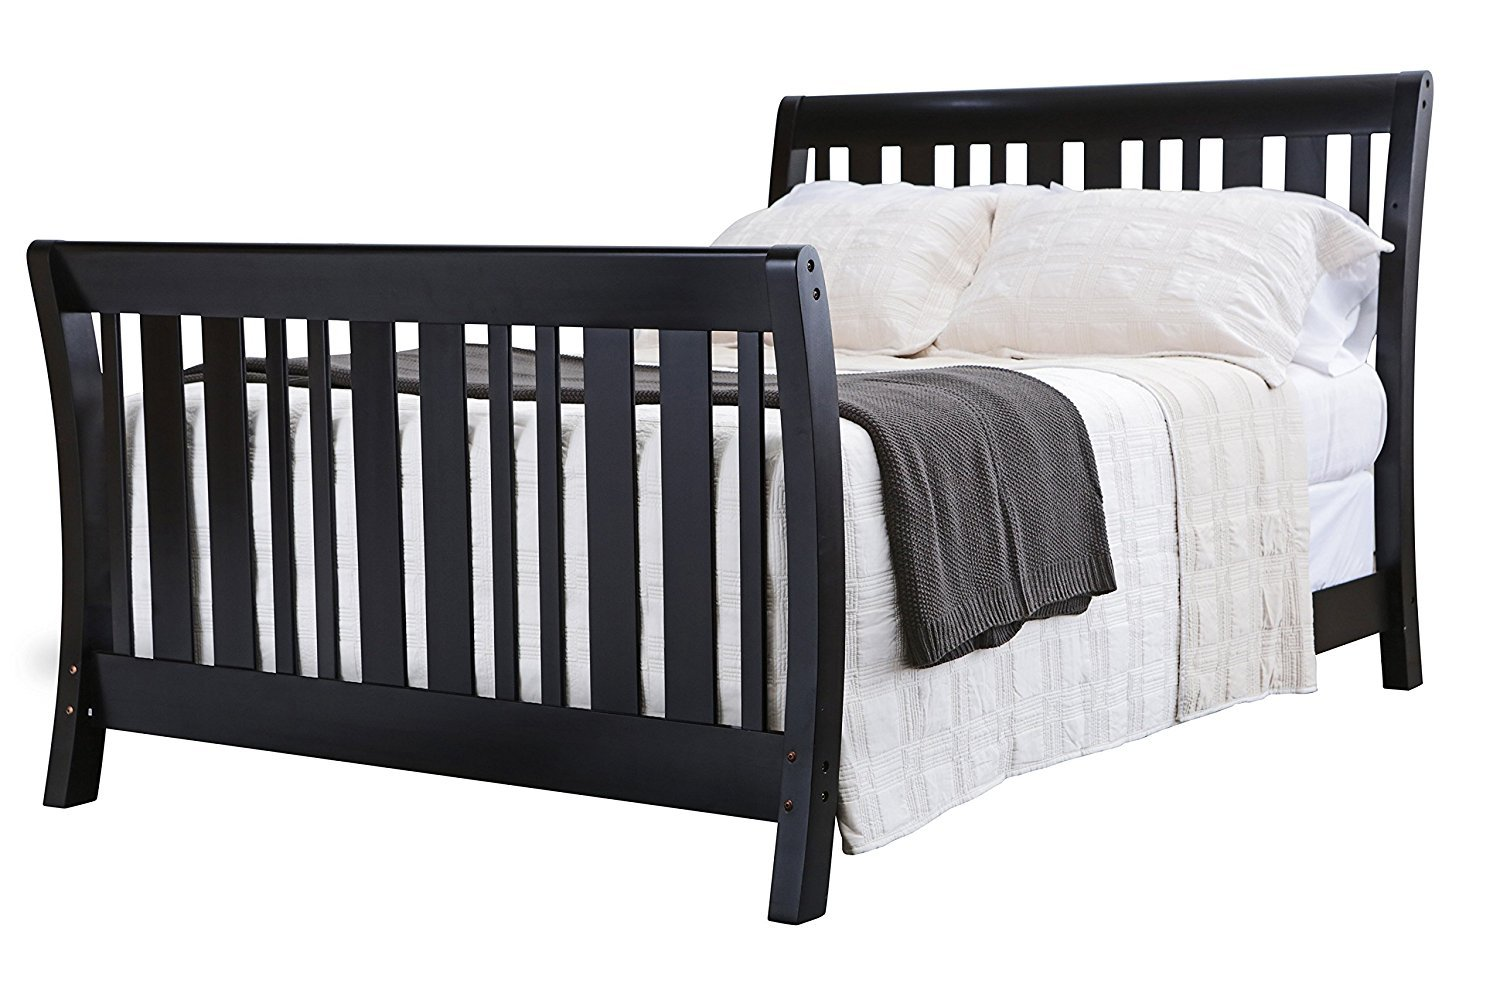 Full Size Conversion Kit Bed Rails for Nursery Smart's Darby Crib - White